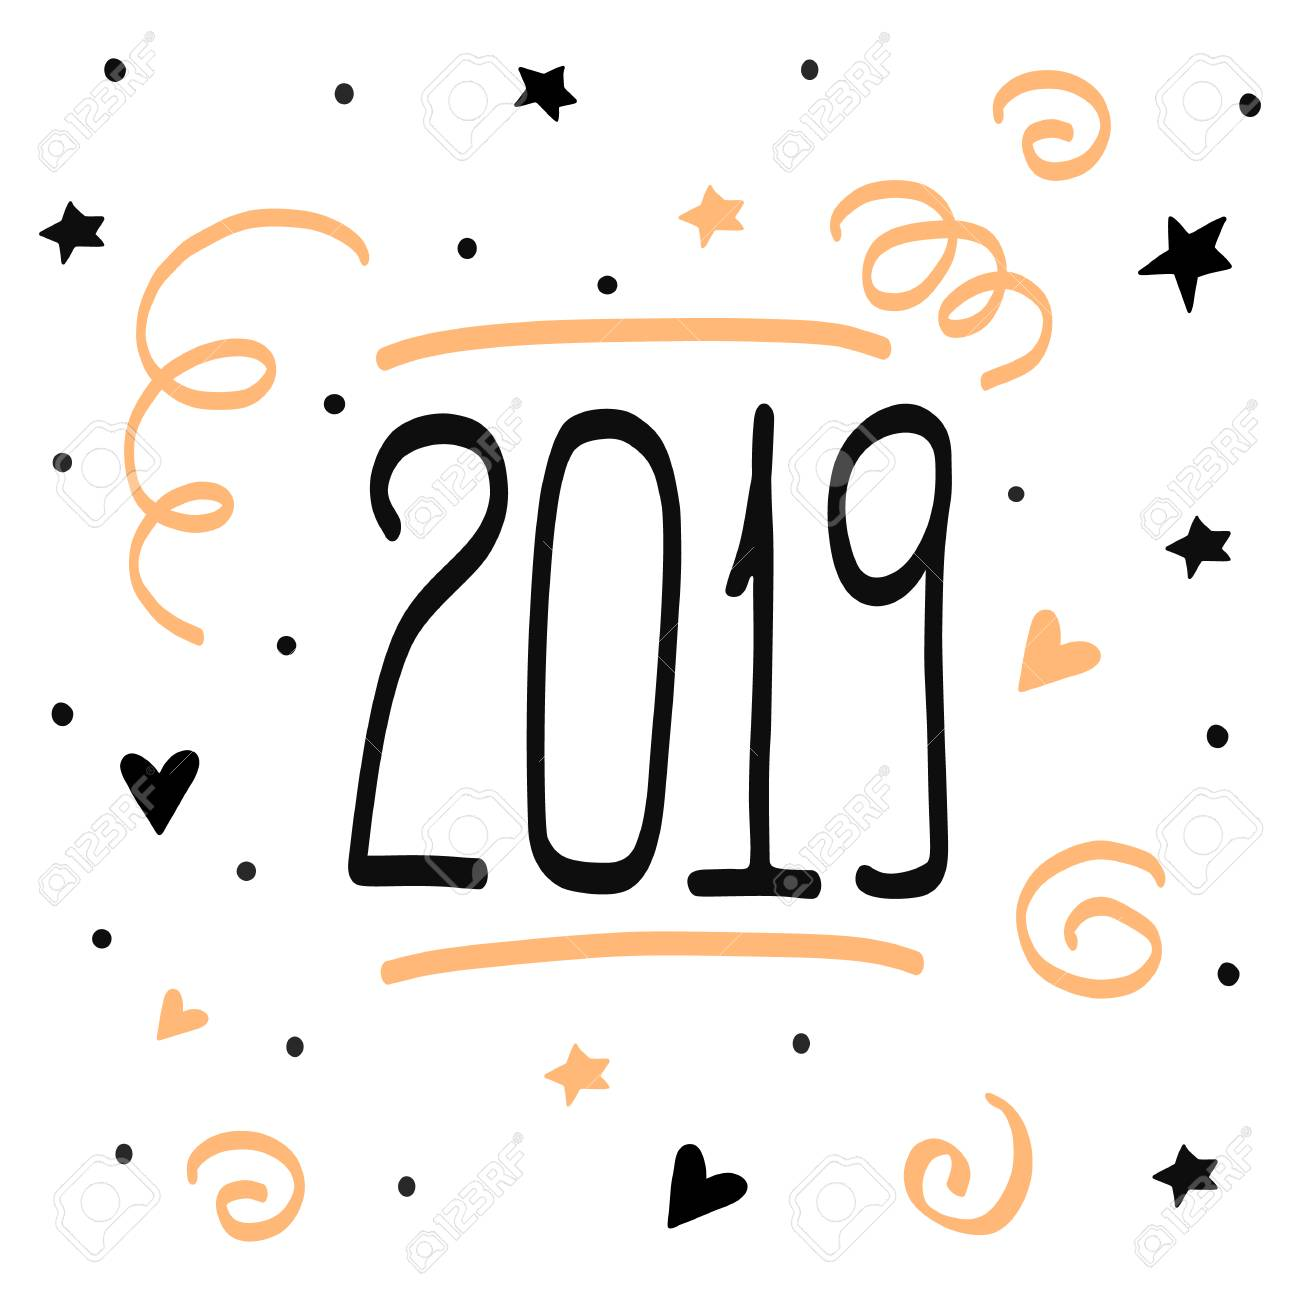 Christmas Shapes.2019 Happy New Year Handdrawn Doodle Poster Christmas Illustration